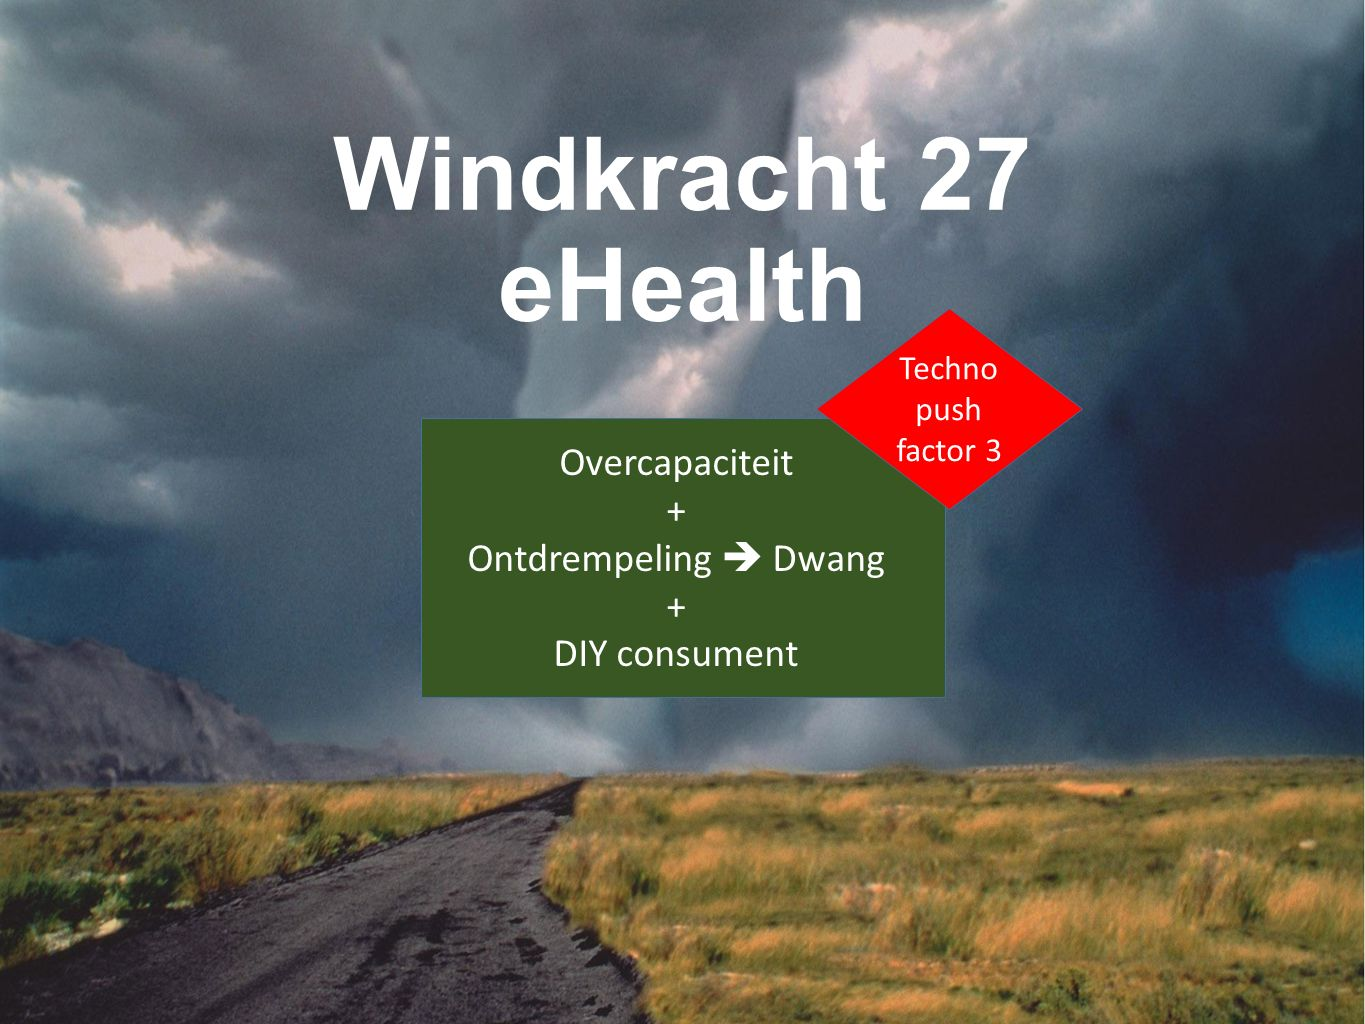 Windkracht 27 eHealth Overcapaciteit + Ontdrempeling  Dwang + DIY consument Techno push factor 3